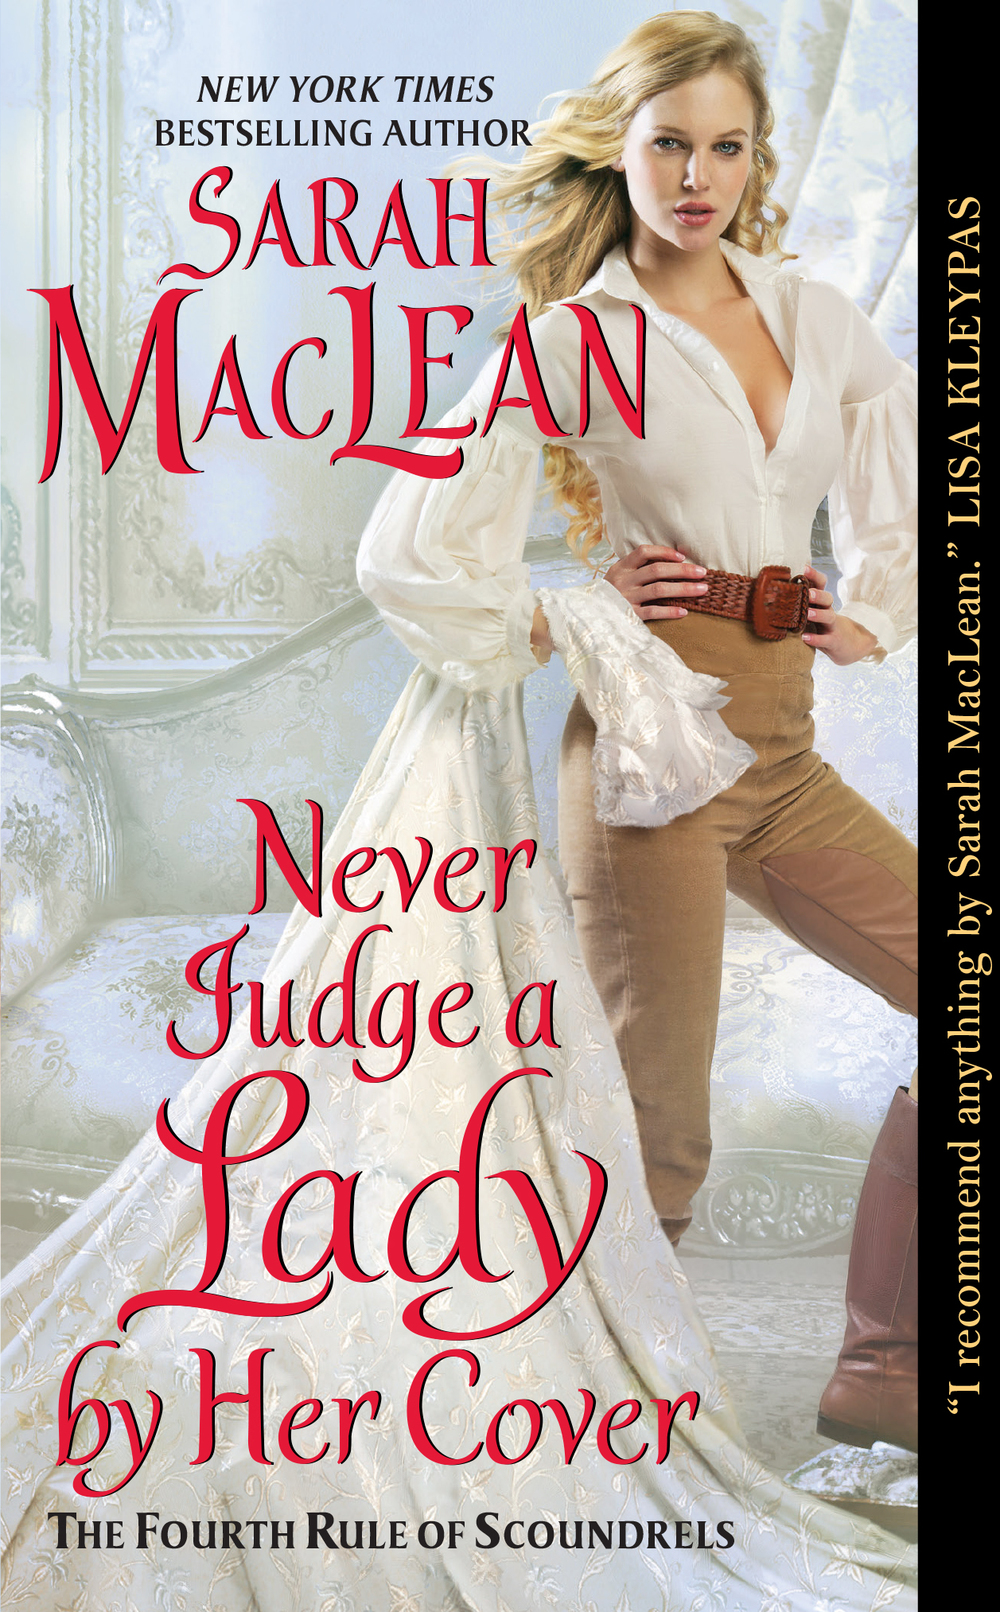 NEVER JUDGE A LADY BY HER COVER (1).JPG